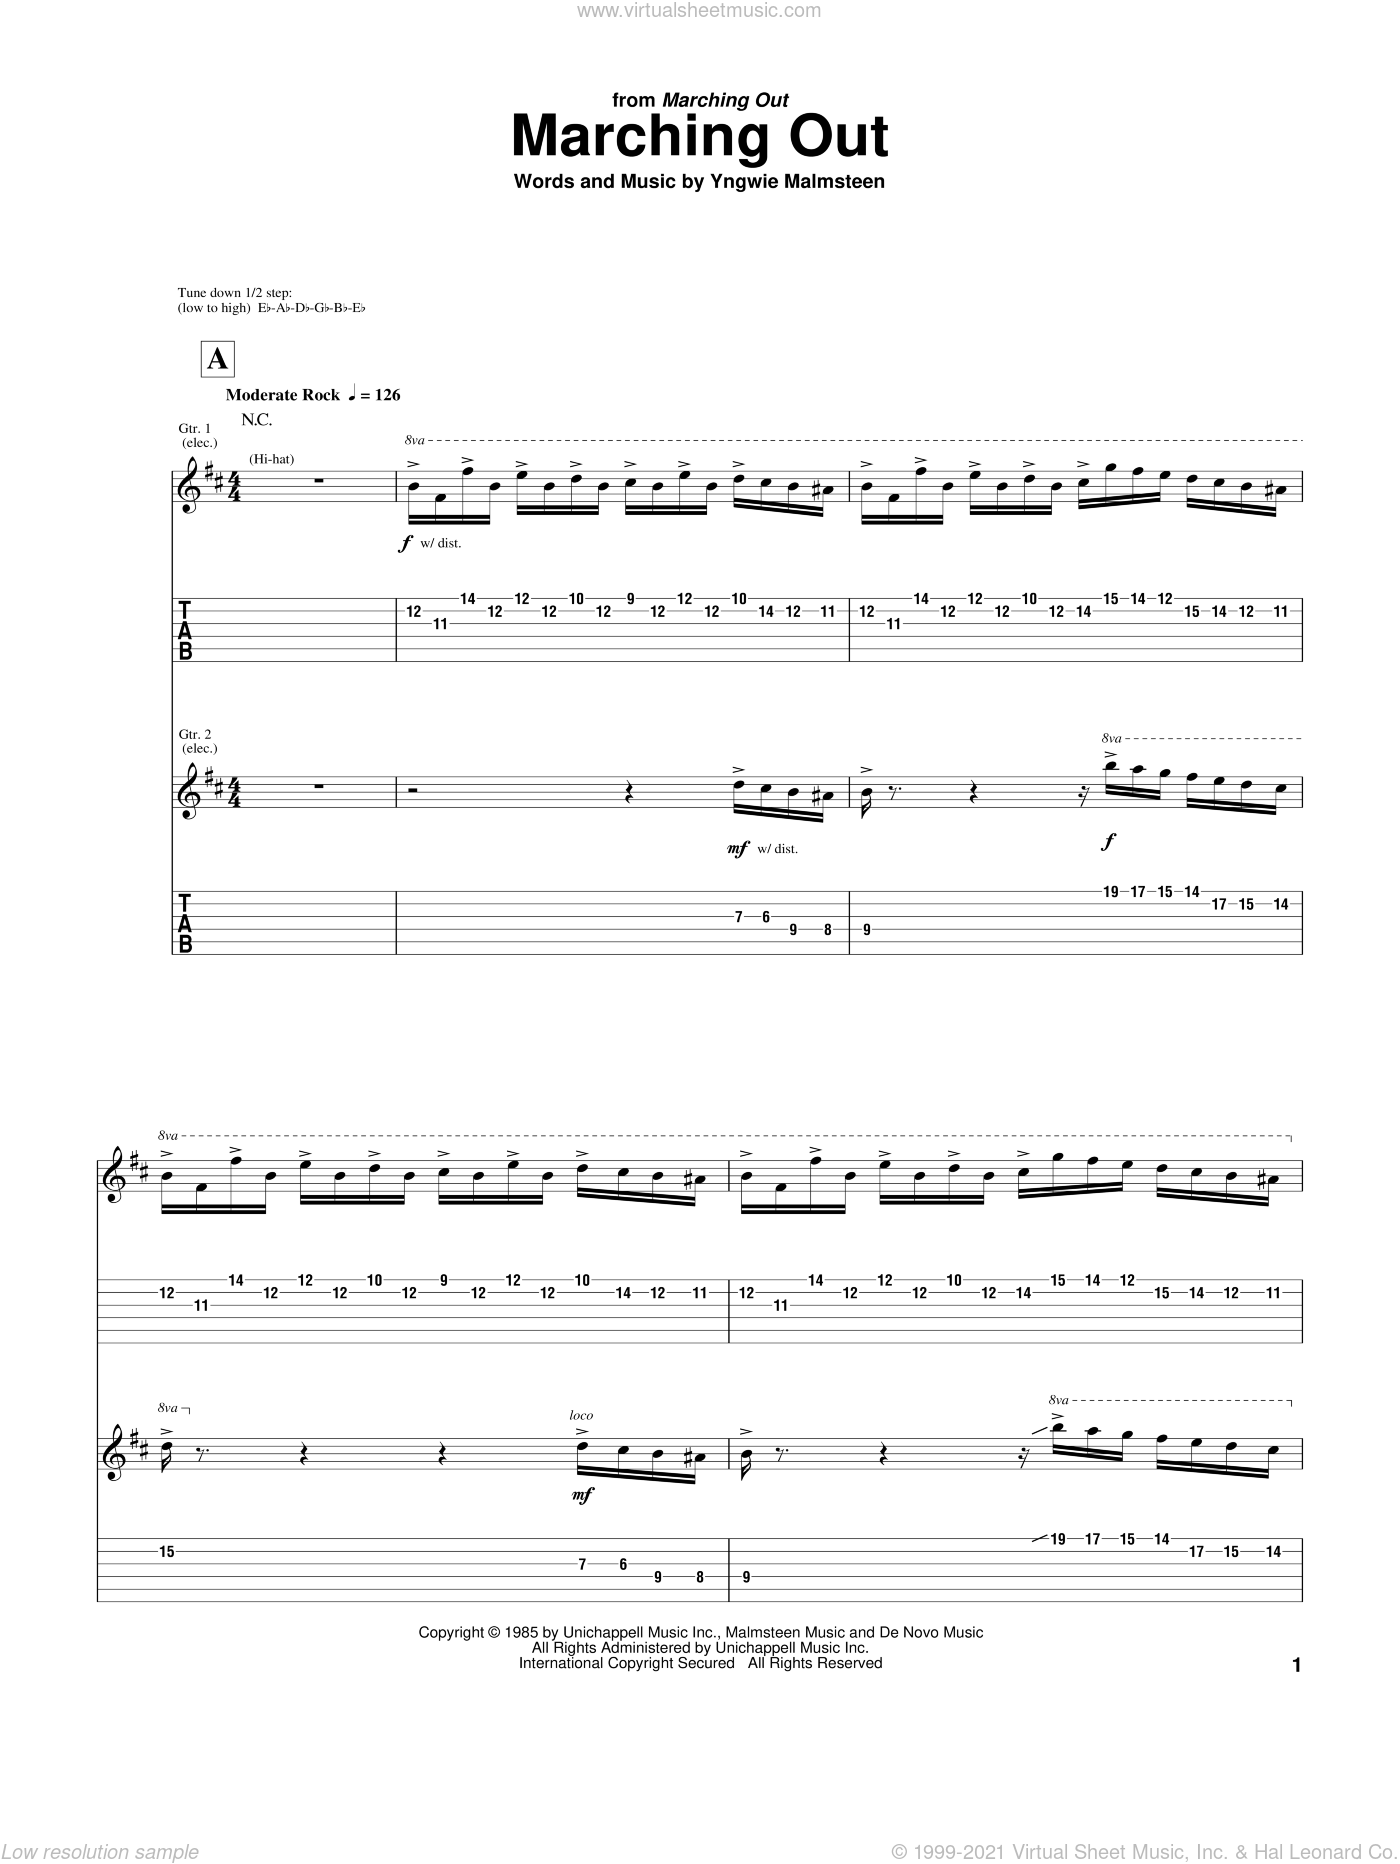 Marching Out sheet music for guitar (tablature) by Yngwie Malmsteen